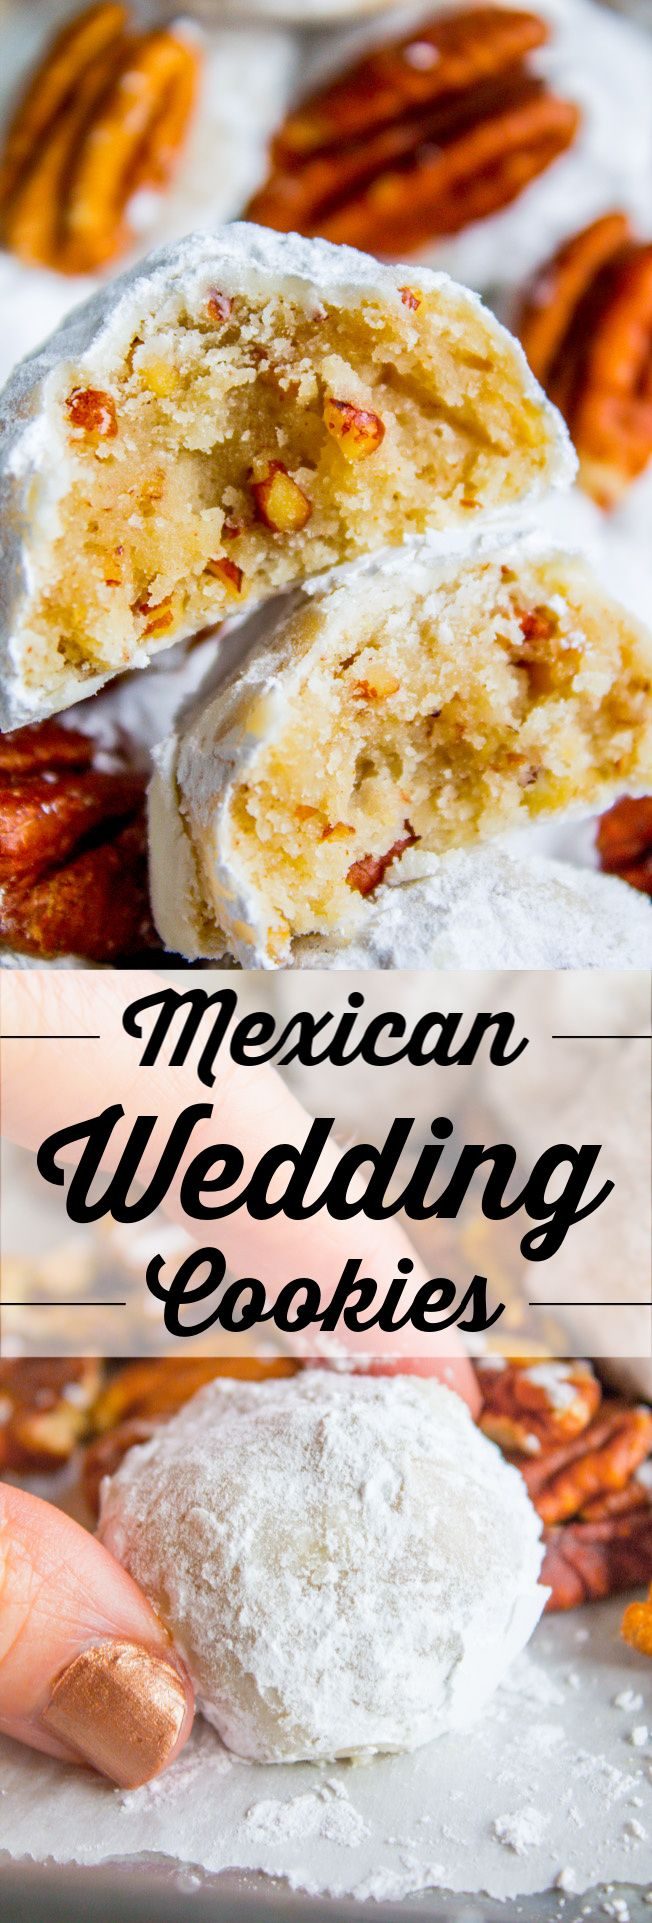 Mexican Wedding Cookies (Russian Tea Cakes) The Food